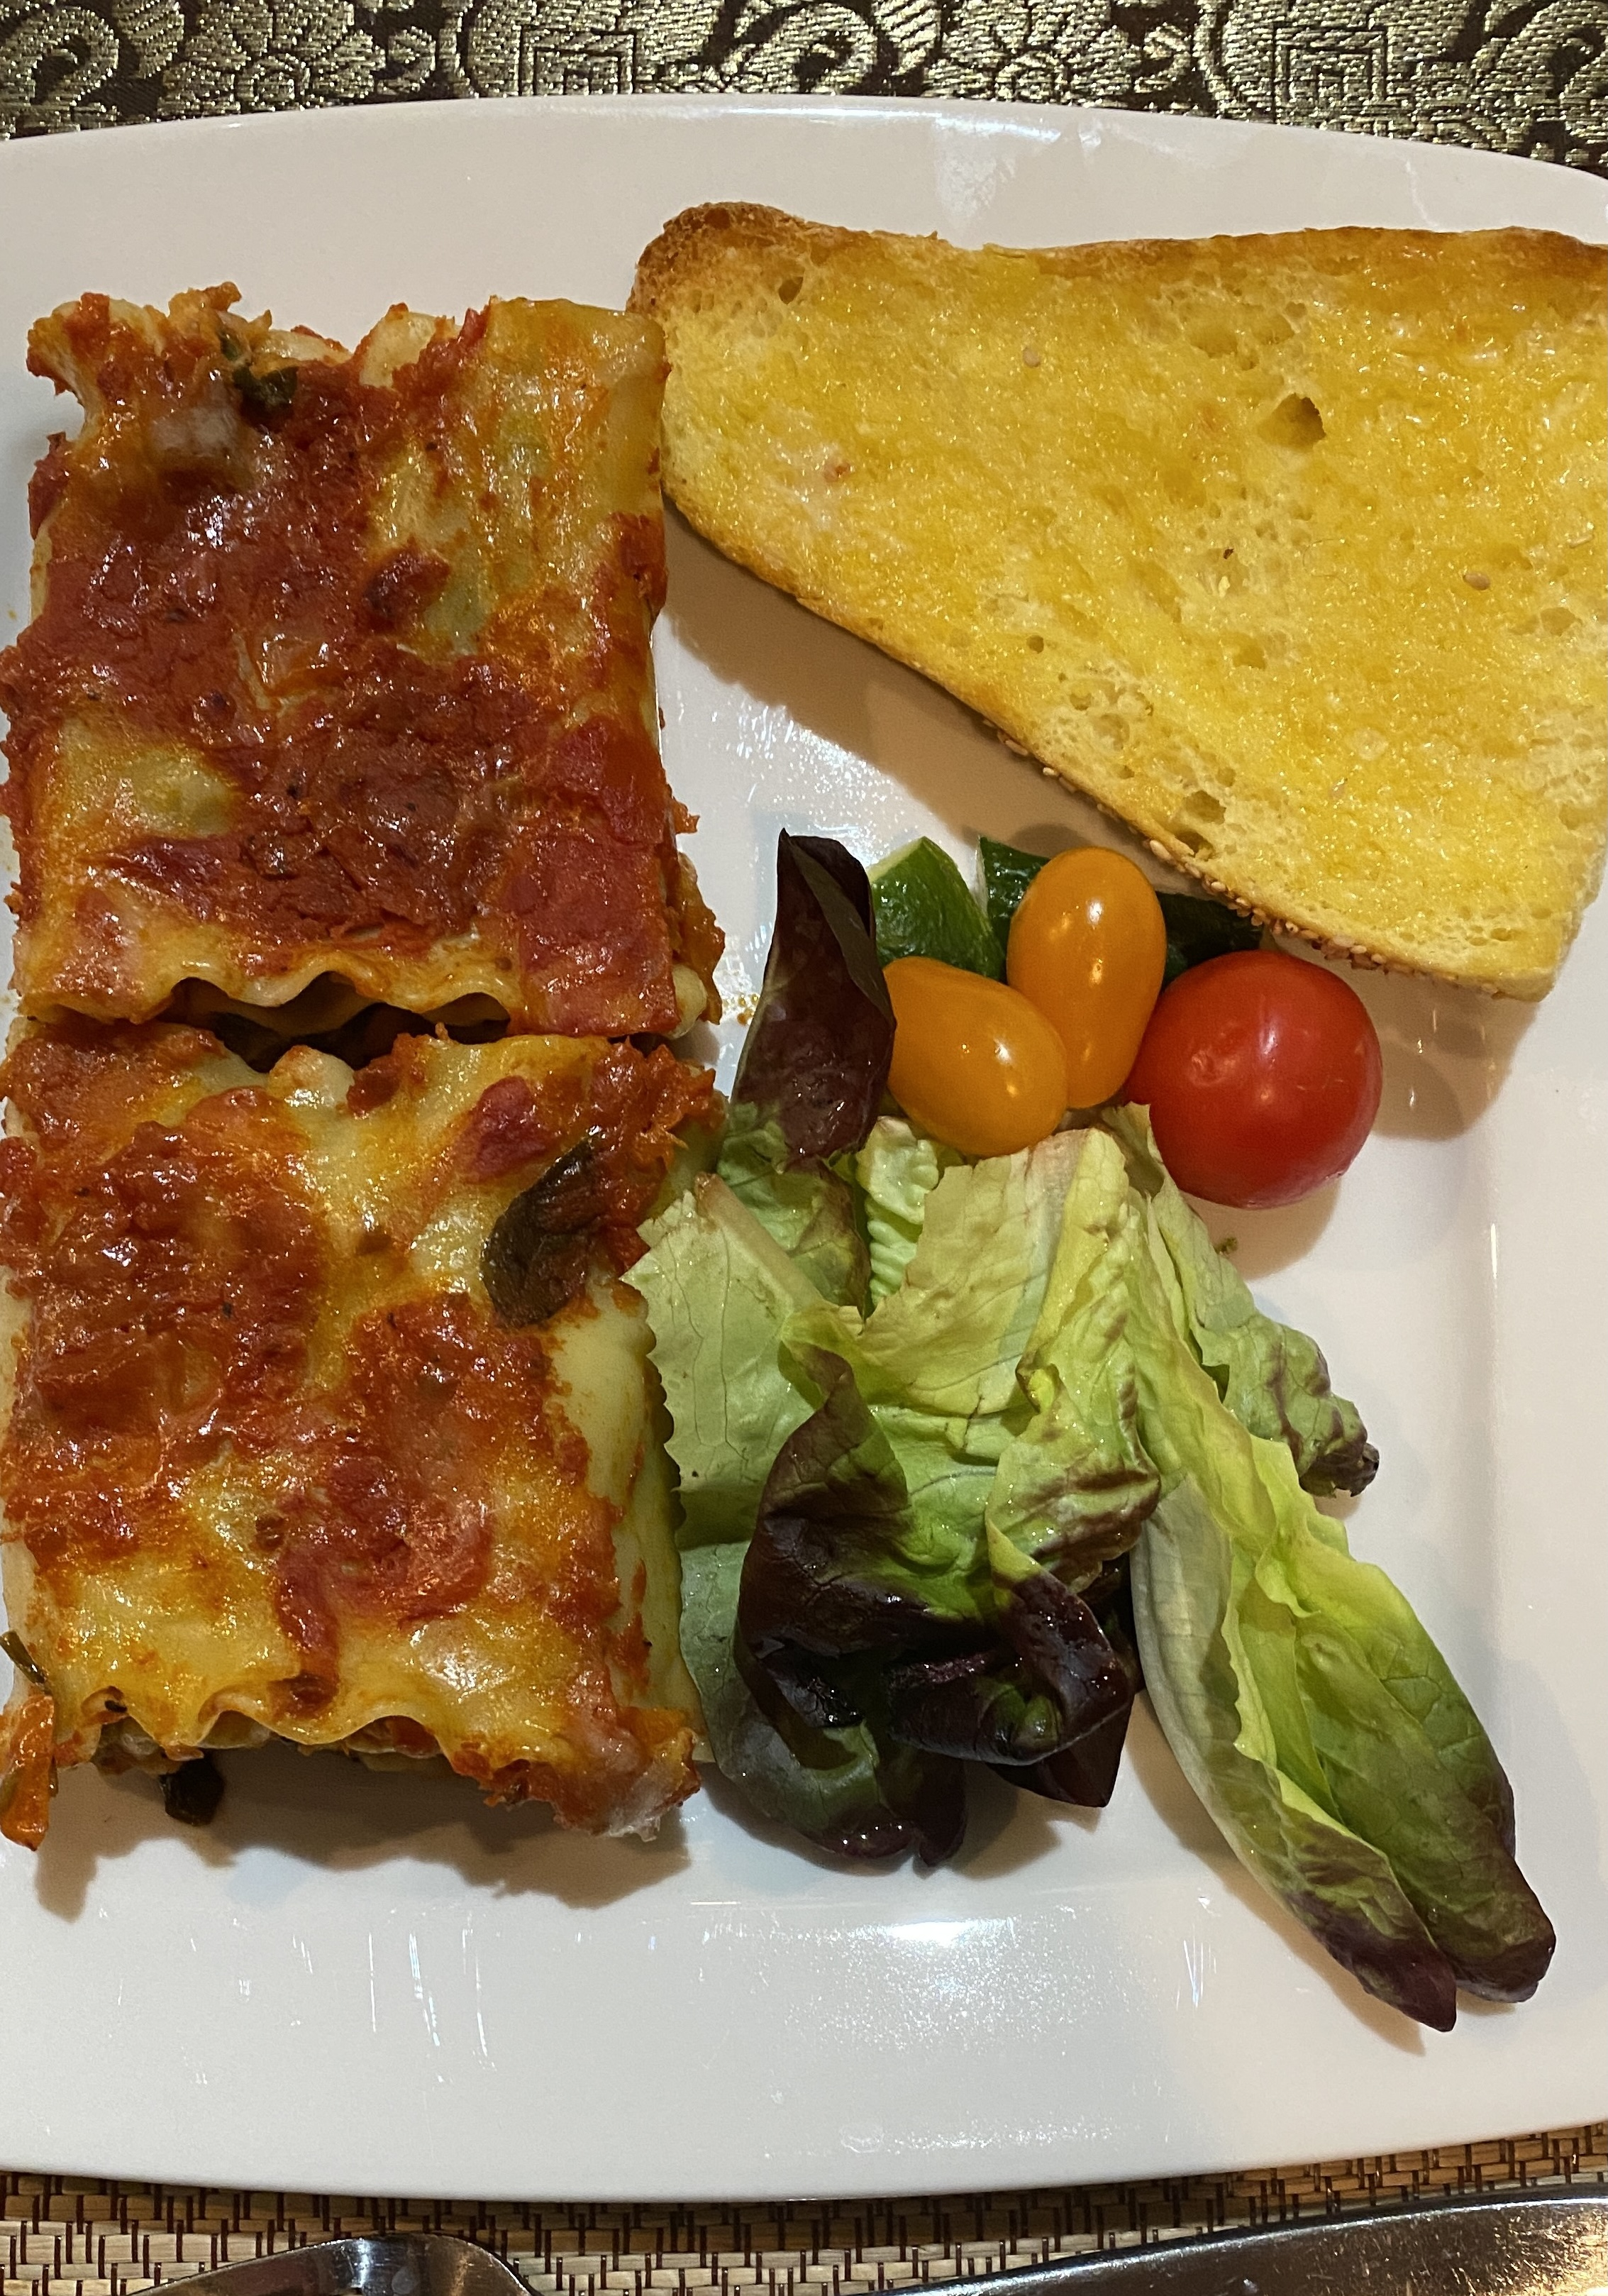 Serve with salad and toasted Italian bread